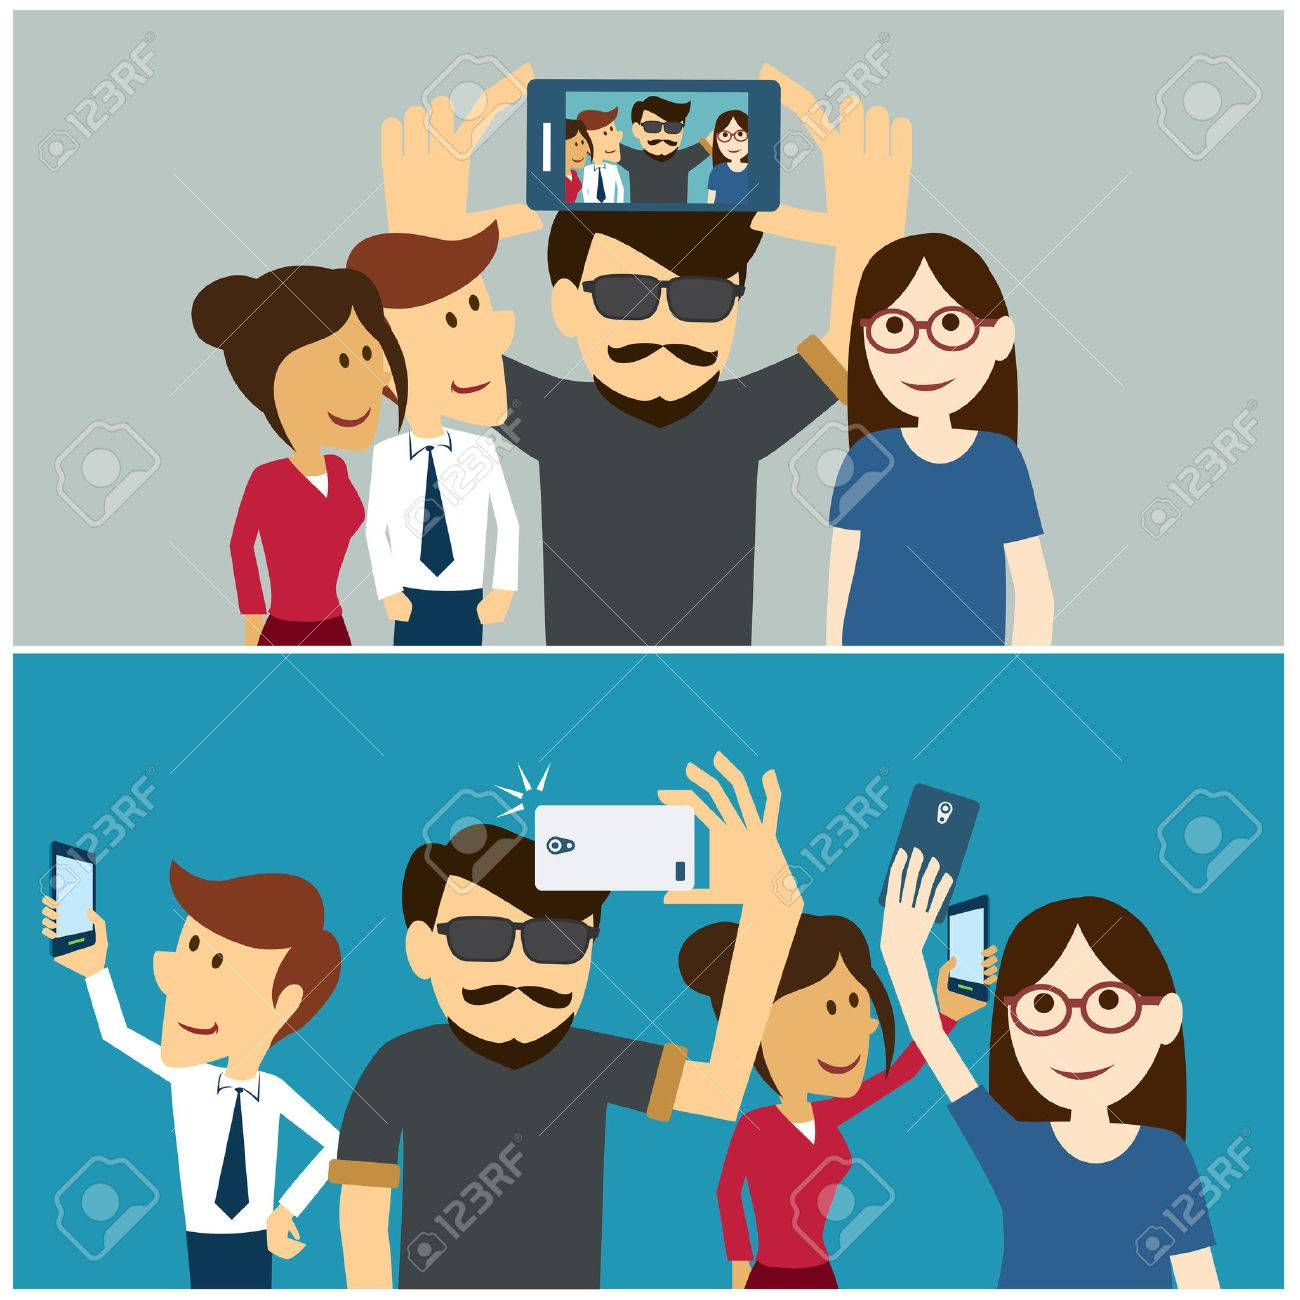 taking a selfie photo flat design royalty free cliparts vectors